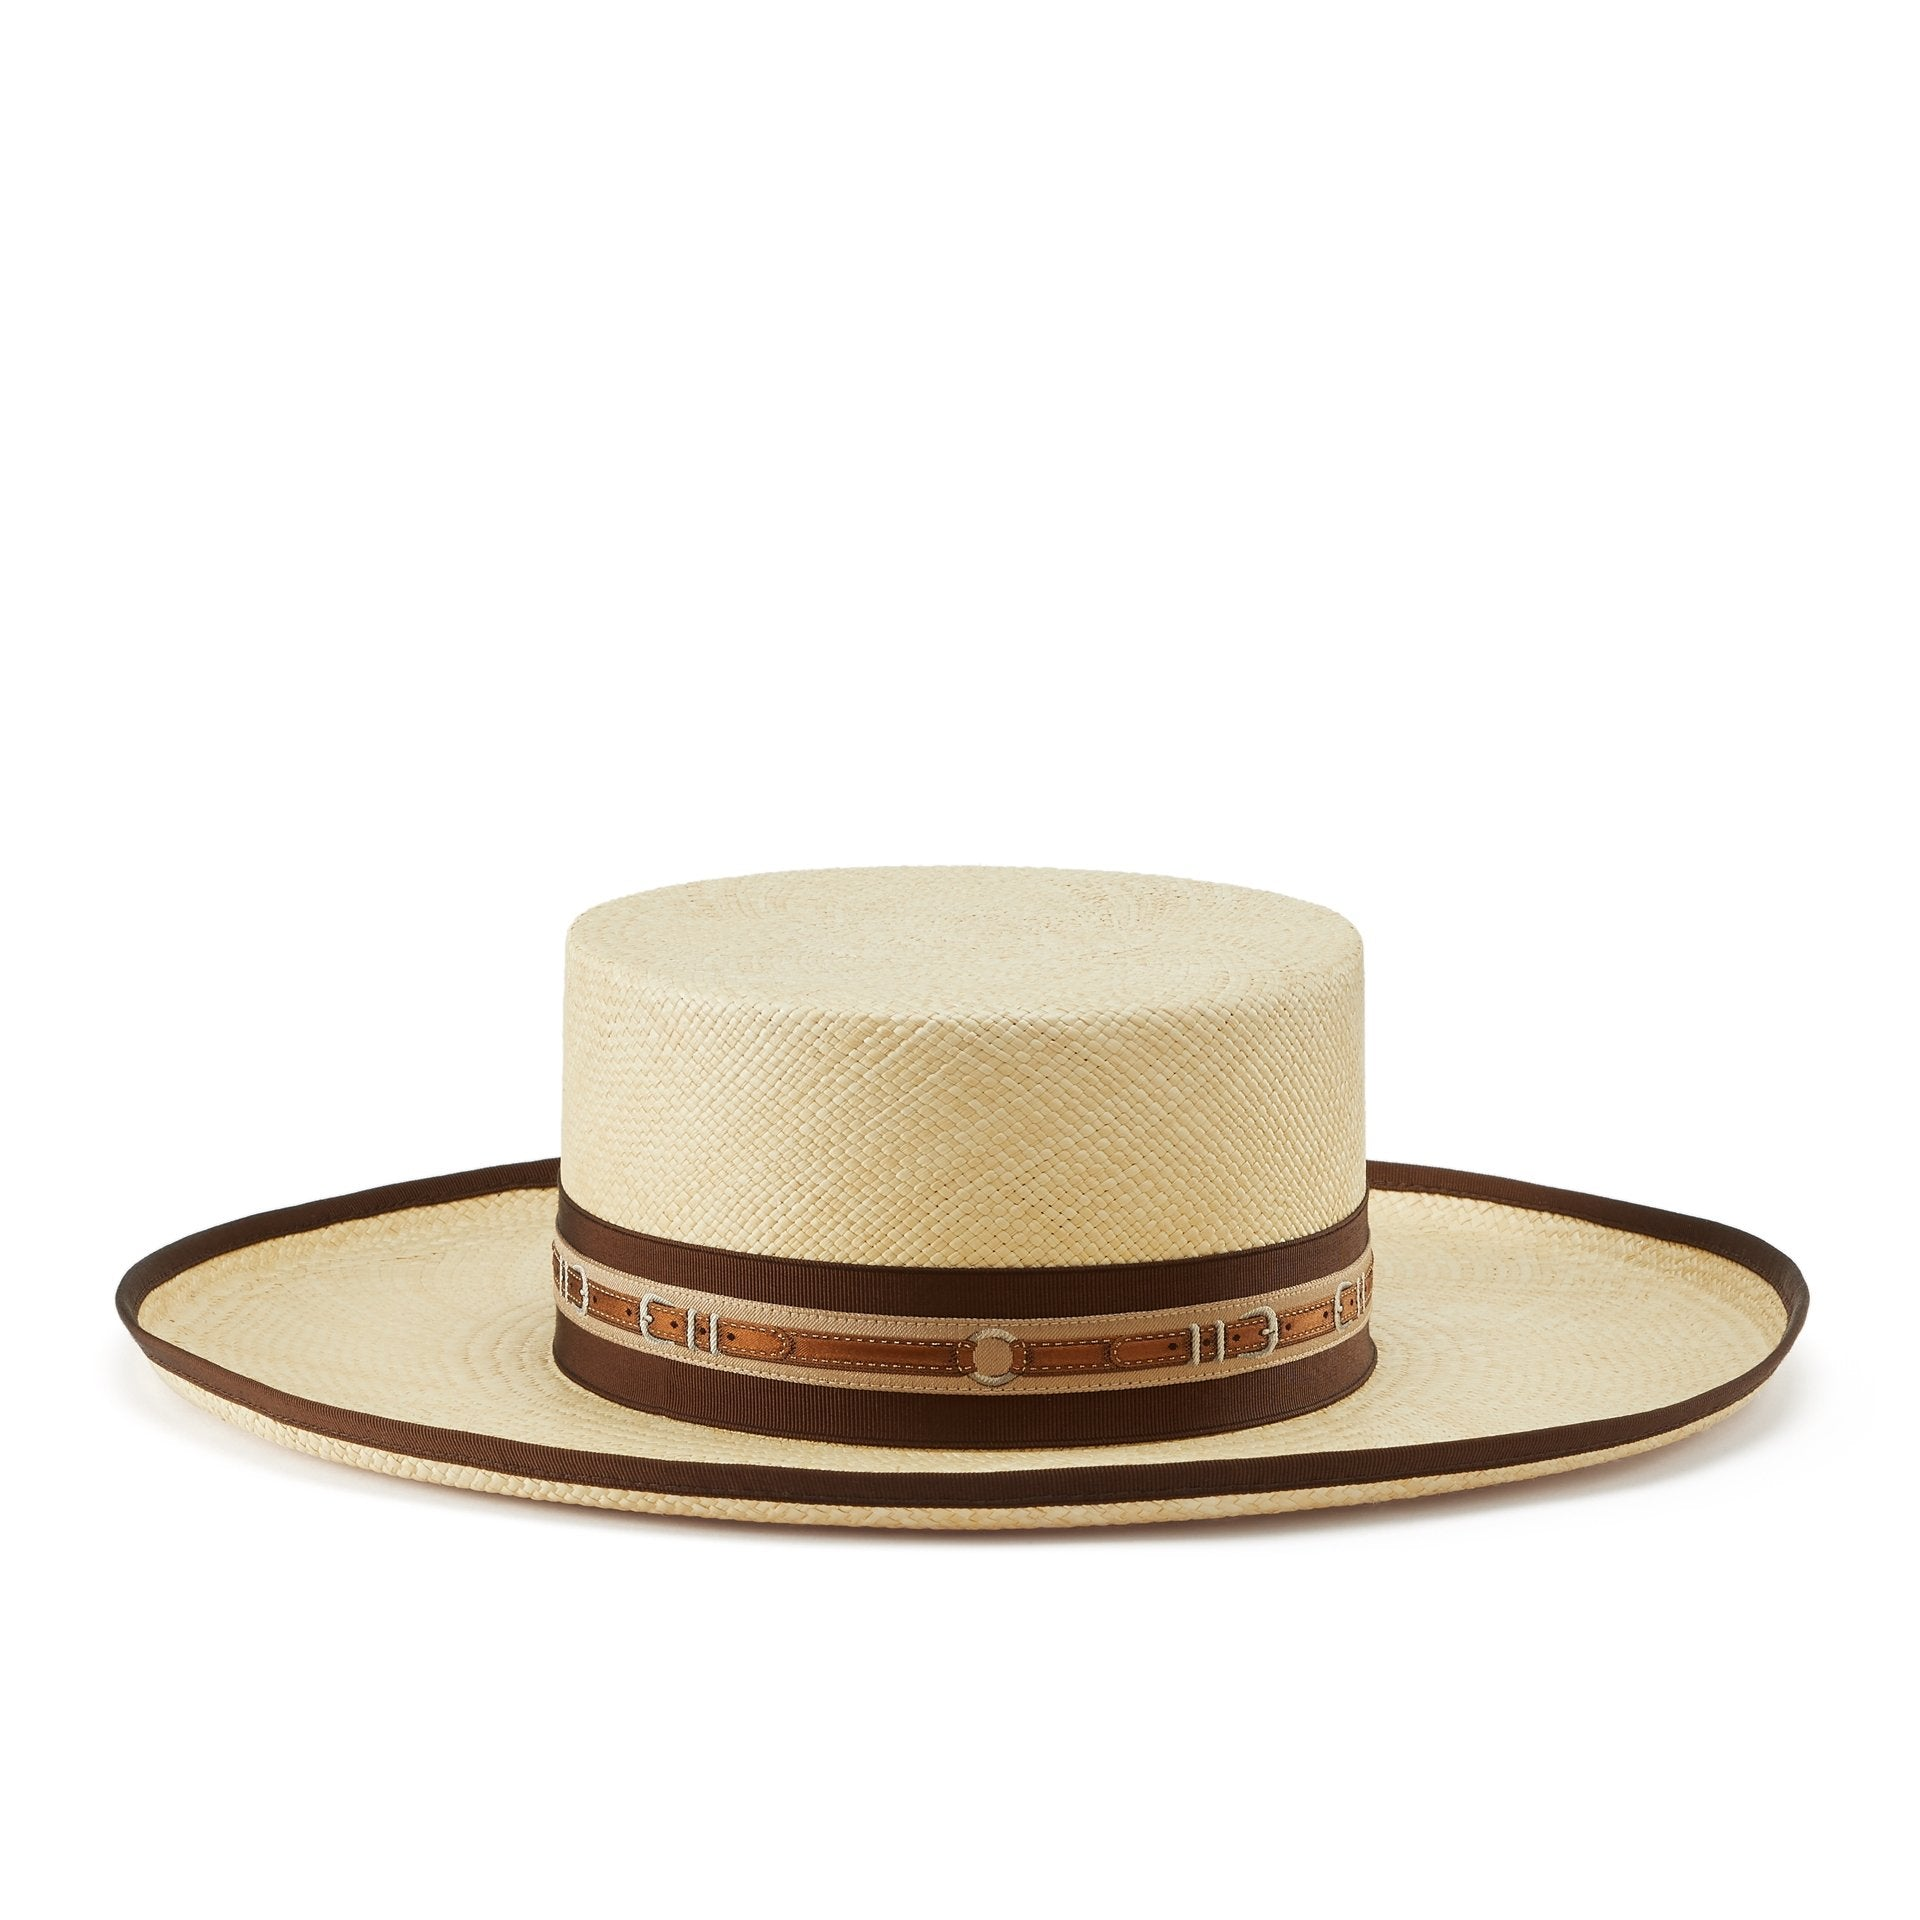 Toulon Panama - Panamas, Straw and Sun Hats for Women - Lock & Co. Hatters London UK